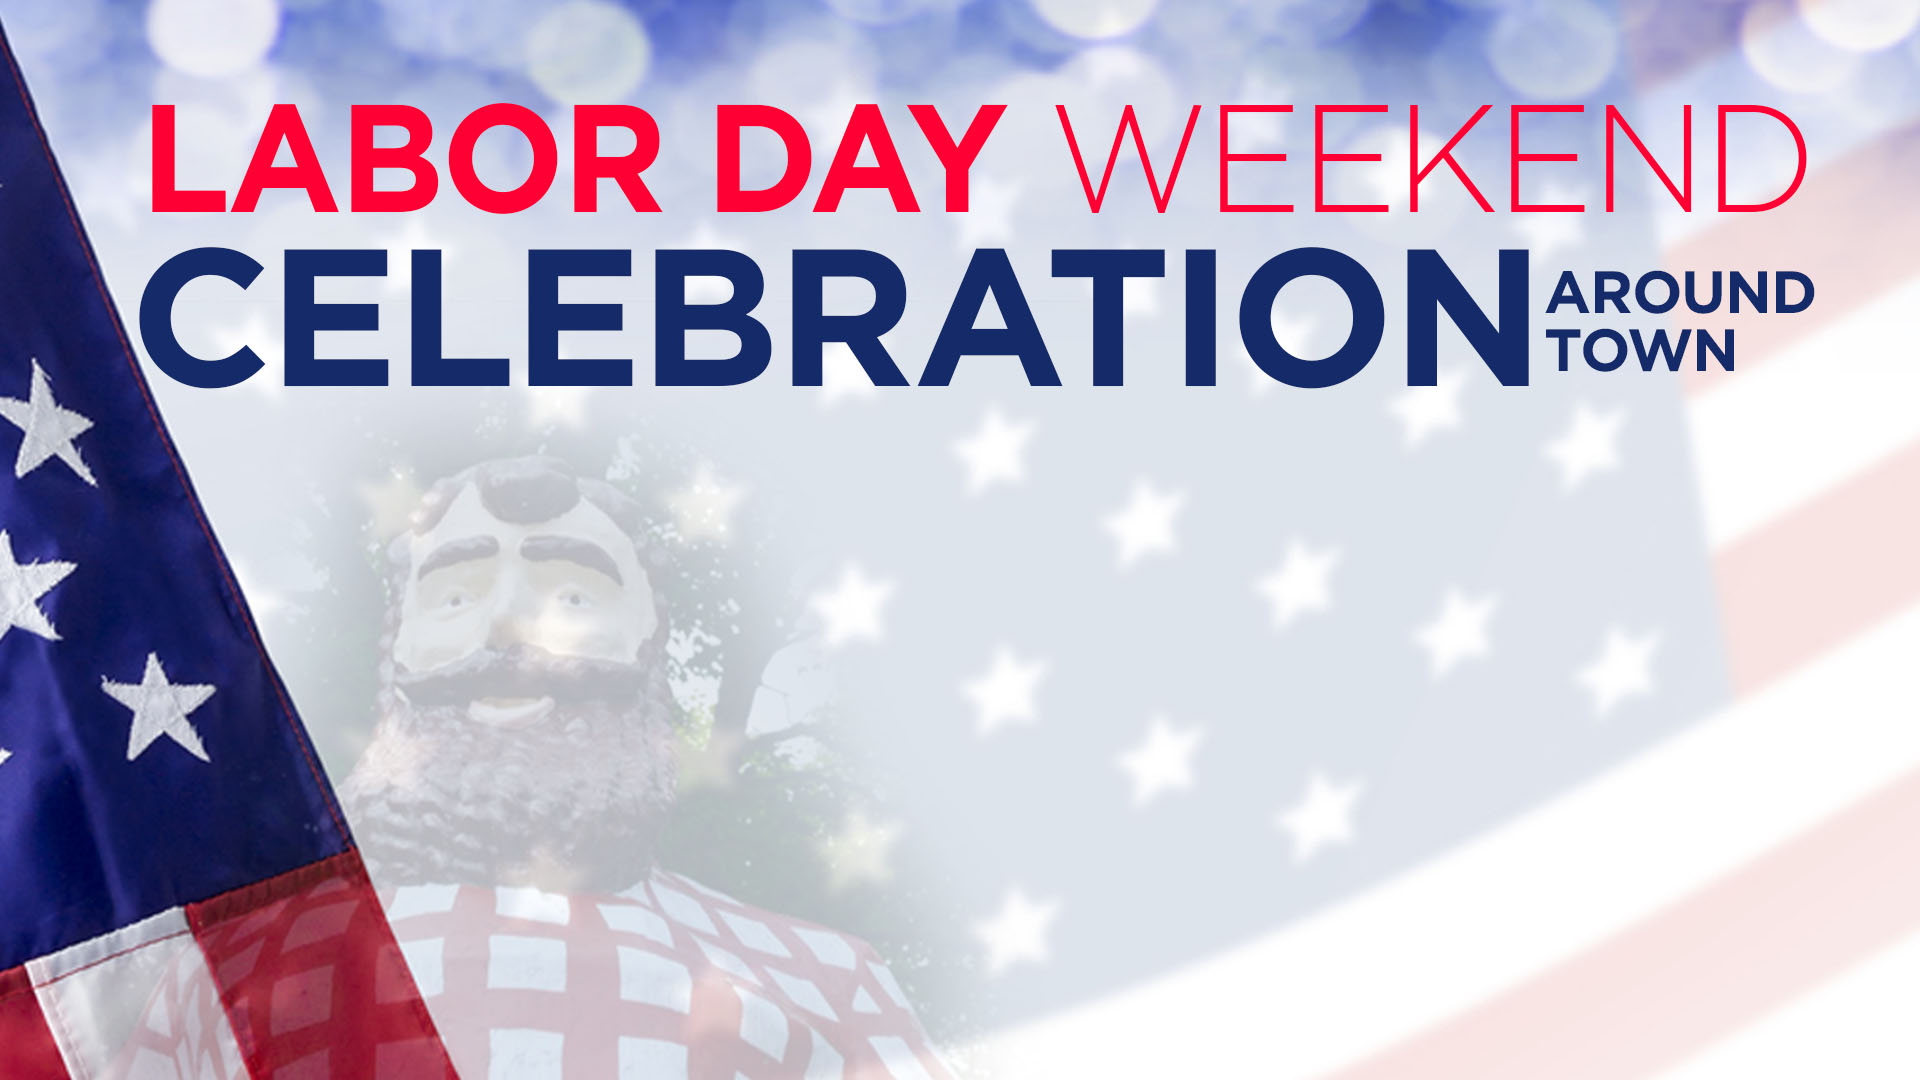 Labor Day Celebration in Old Forge NY